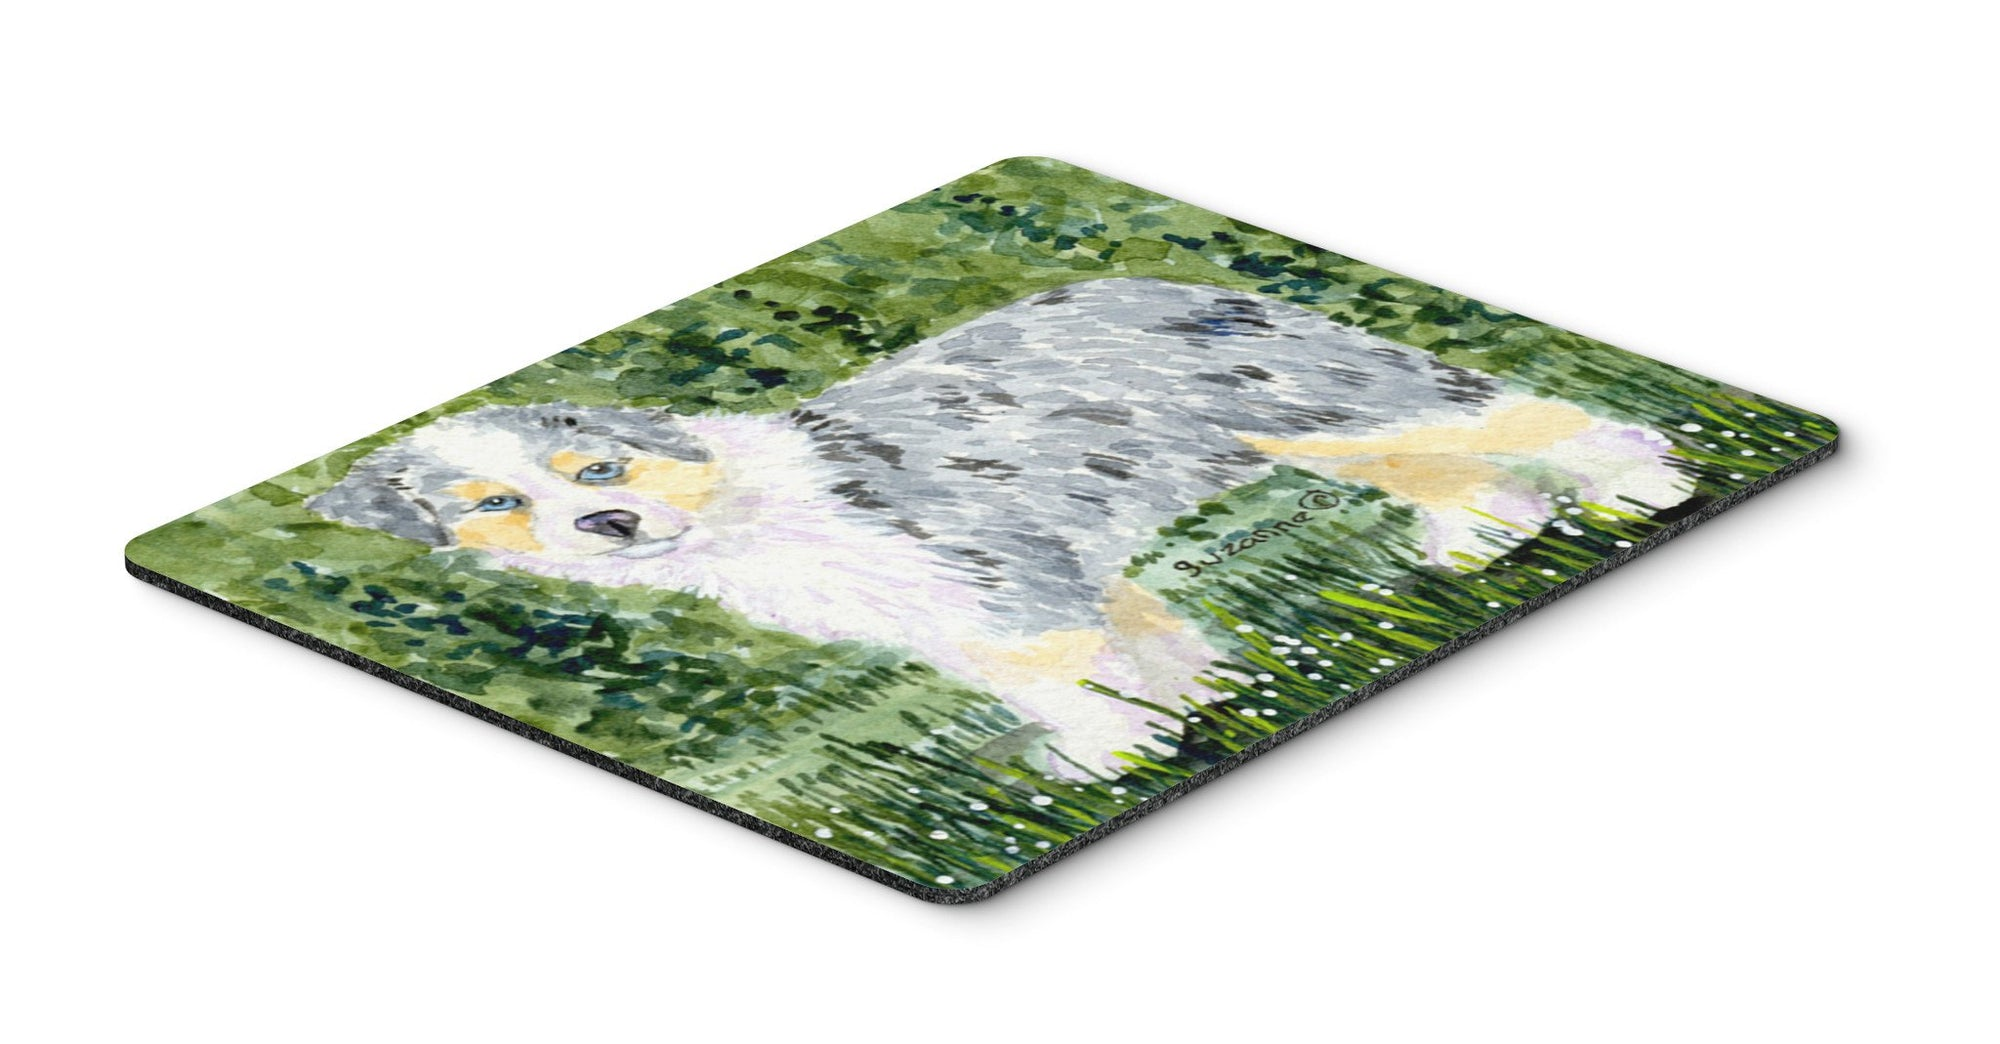 Australian Shepherd Mouse pad, hot pad, or trivet by Caroline's Treasures